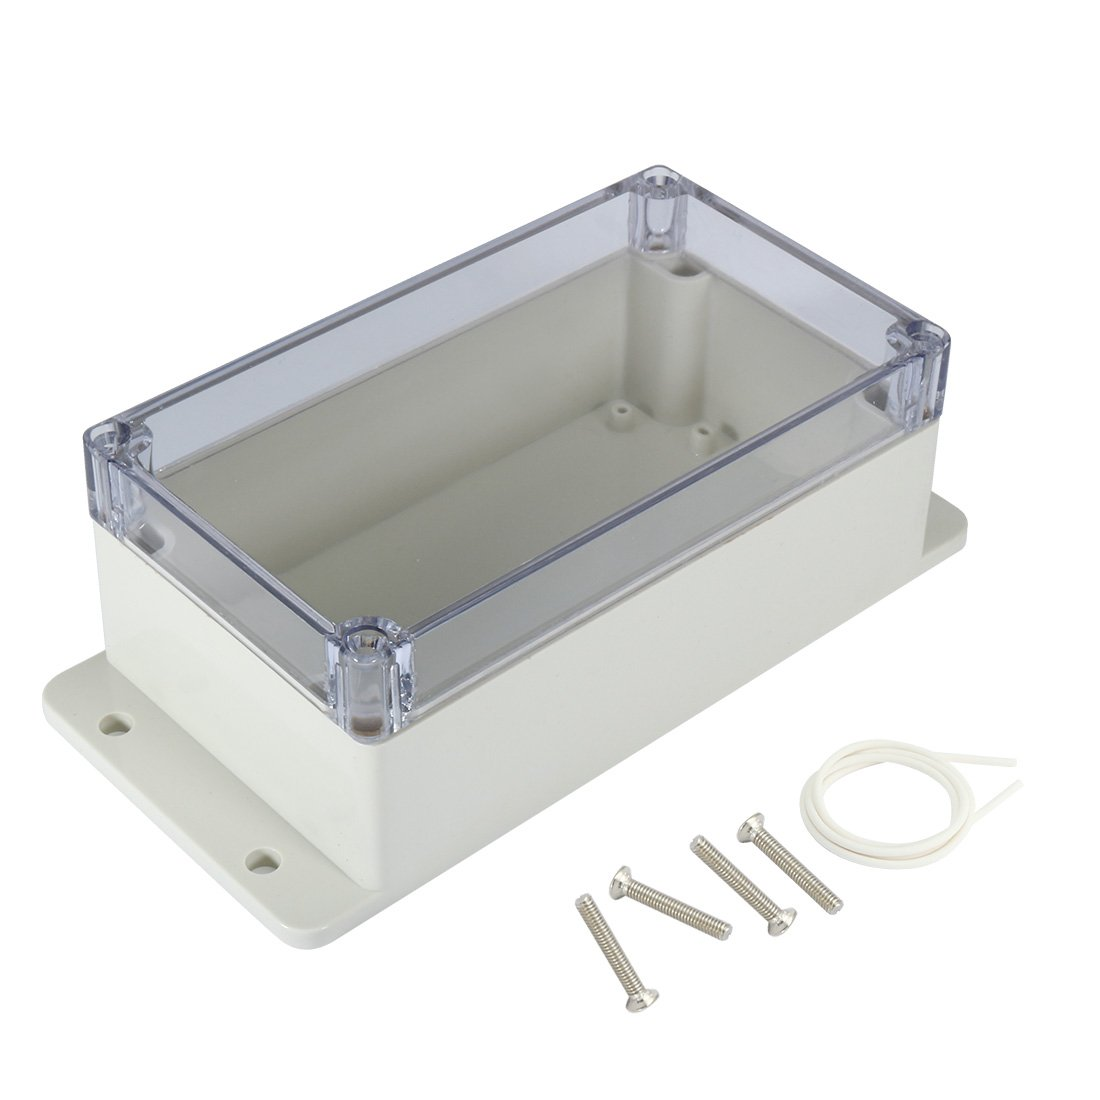 Awclub Waterproof Dustproof ABS Plastic Junction Box Universal Electric Project Enclosure with PC Clear Transparent Cover 6.2''x3.5''x2.5''(158mmx90mmx64mm)